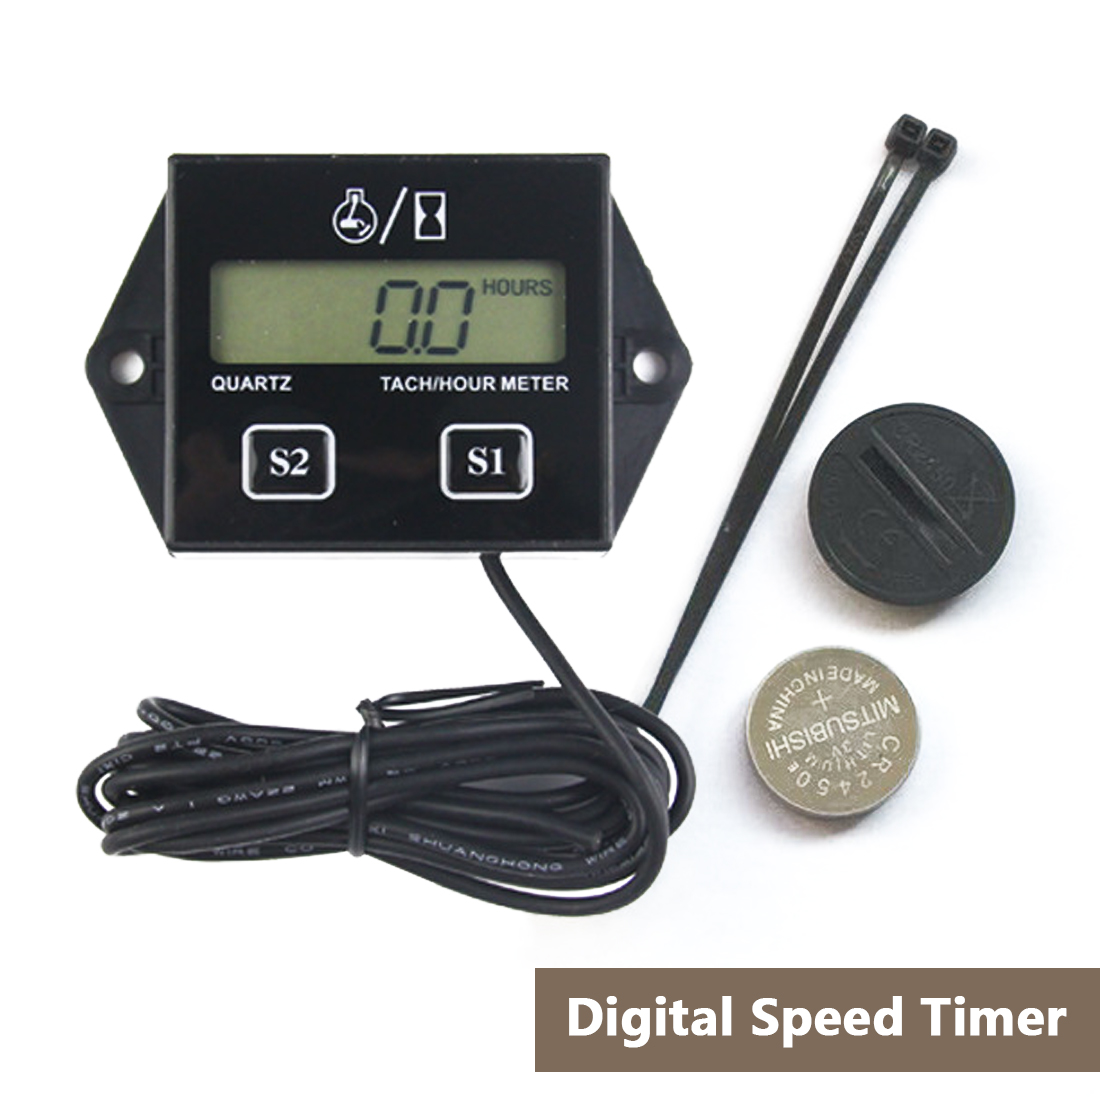 Digital Engine Tach Hour Meter Tachometer Gauge Inductive Display For Motorcycle Motor Marine Chainsaw Pit Bike Boat